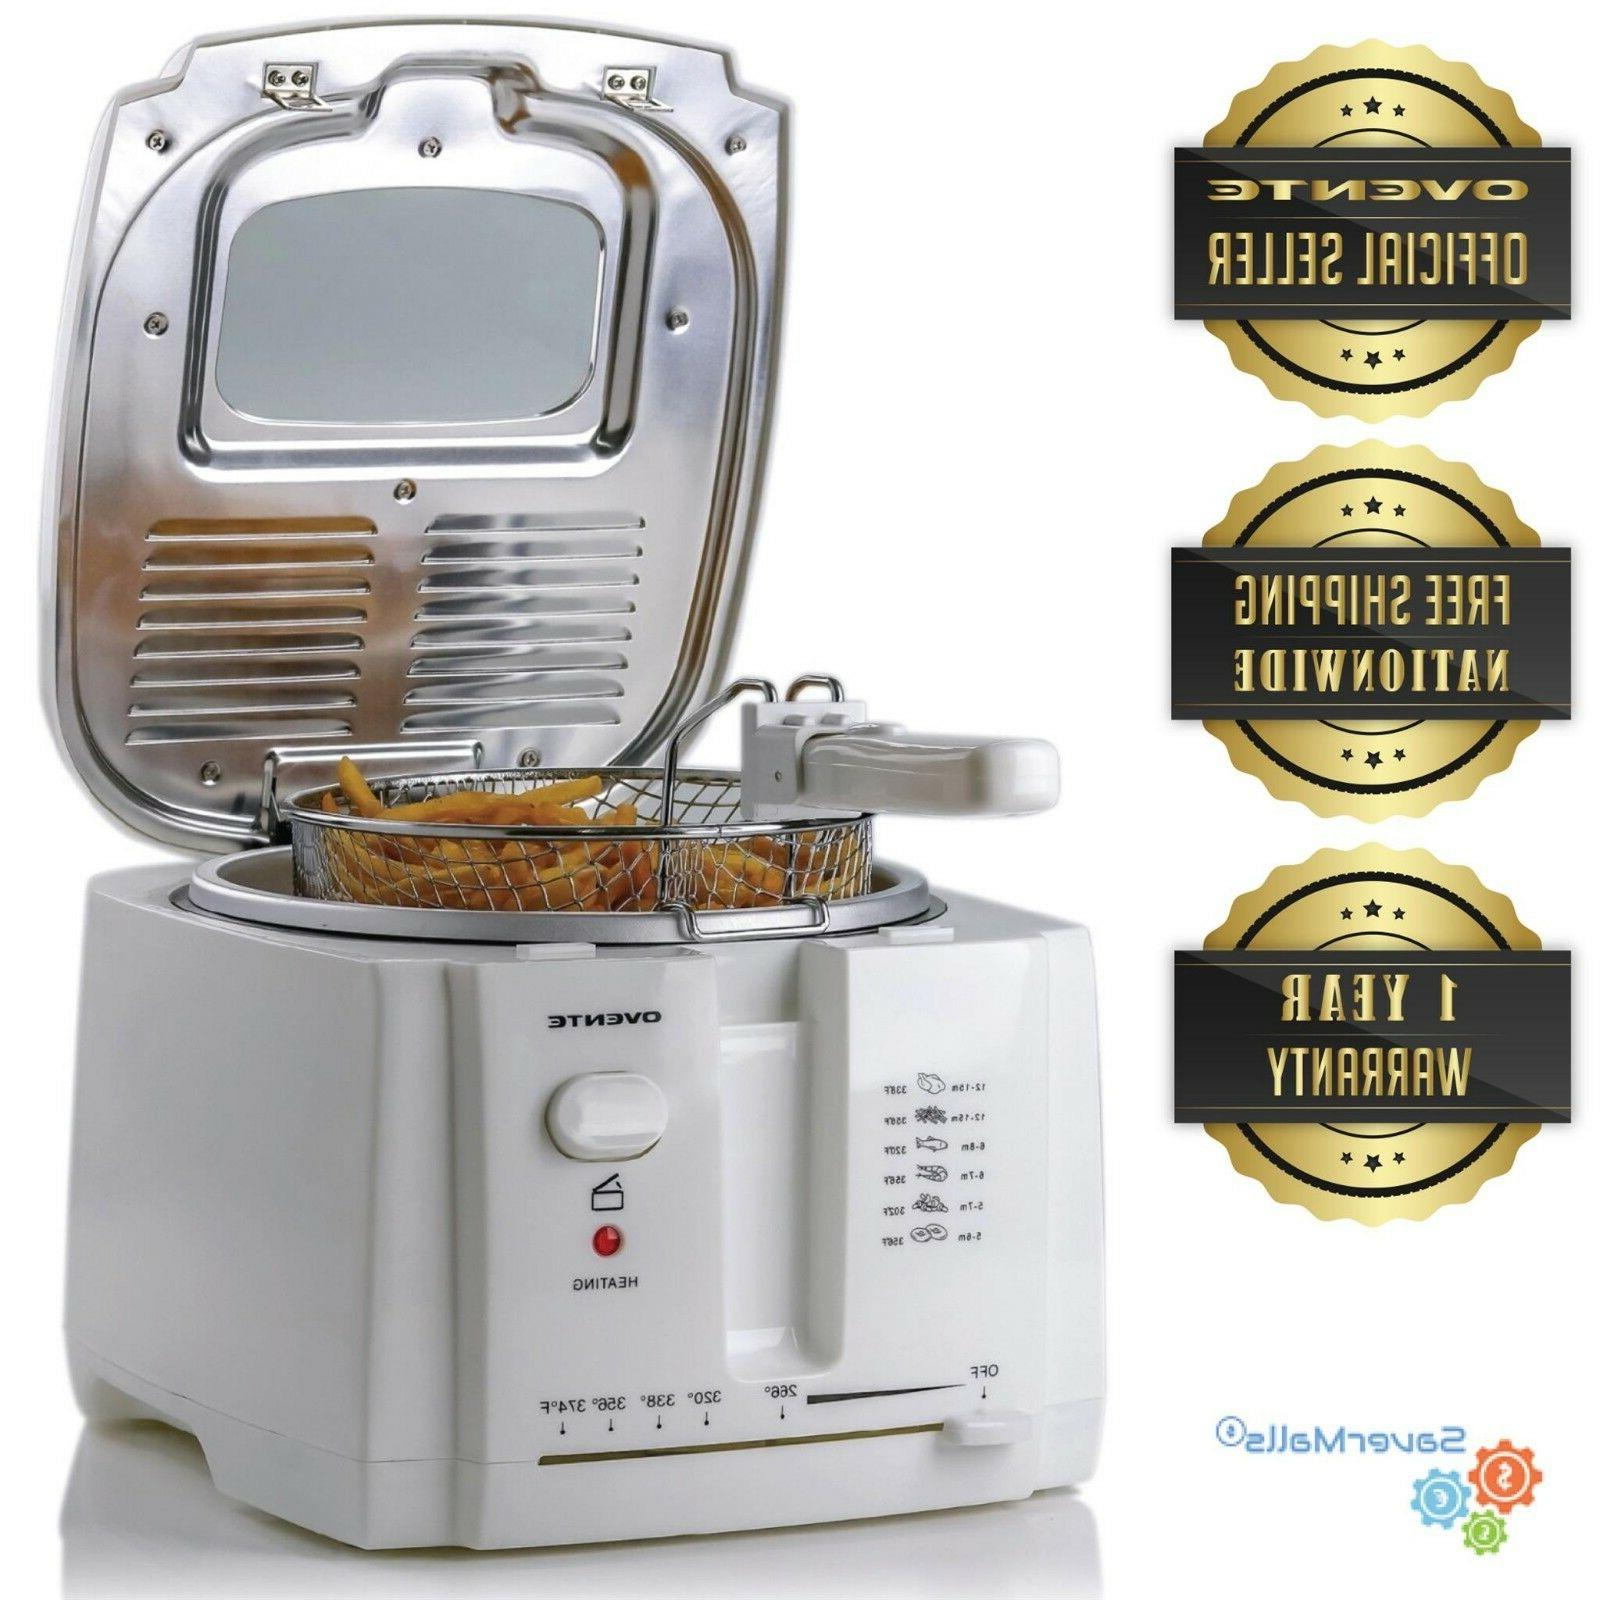 2l electric deep fryer stainless steel removable